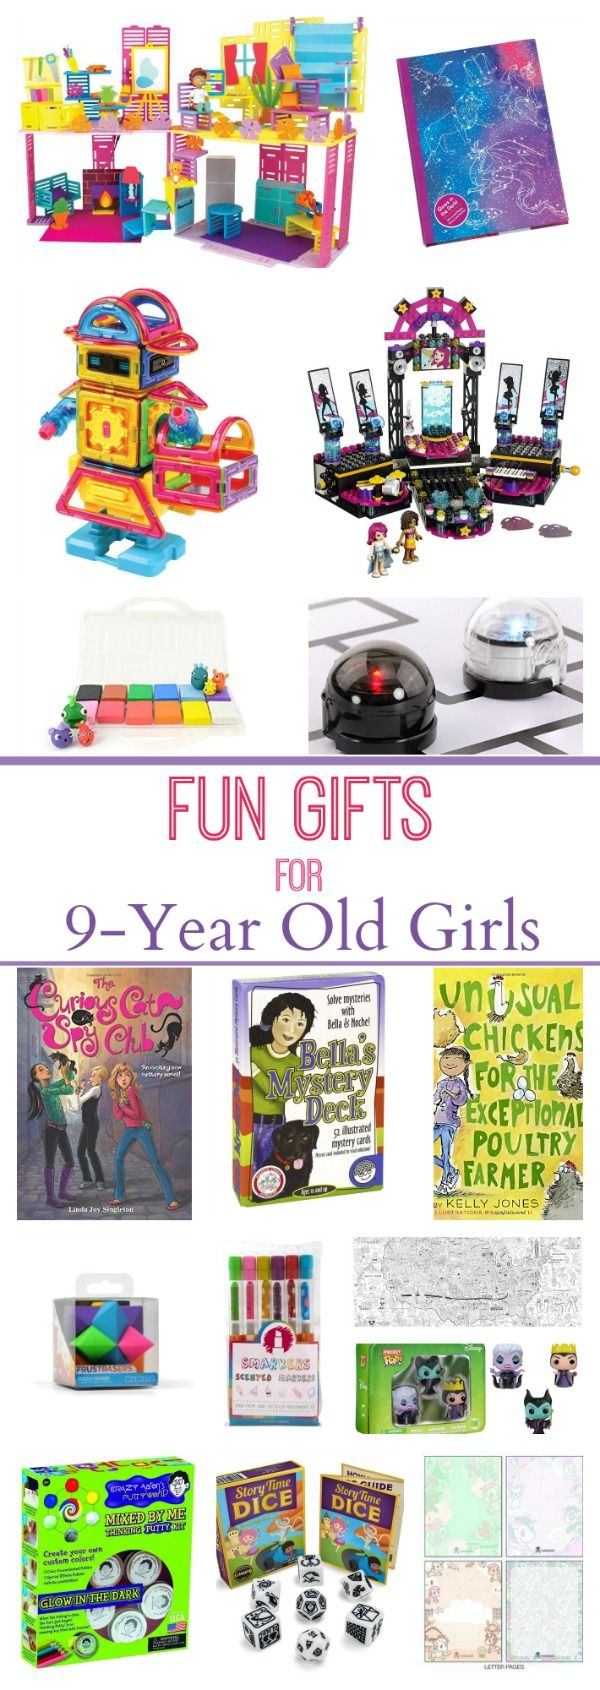 Gifts For 9 Year Old Girls 8 Year Old Christmas Gifts 9